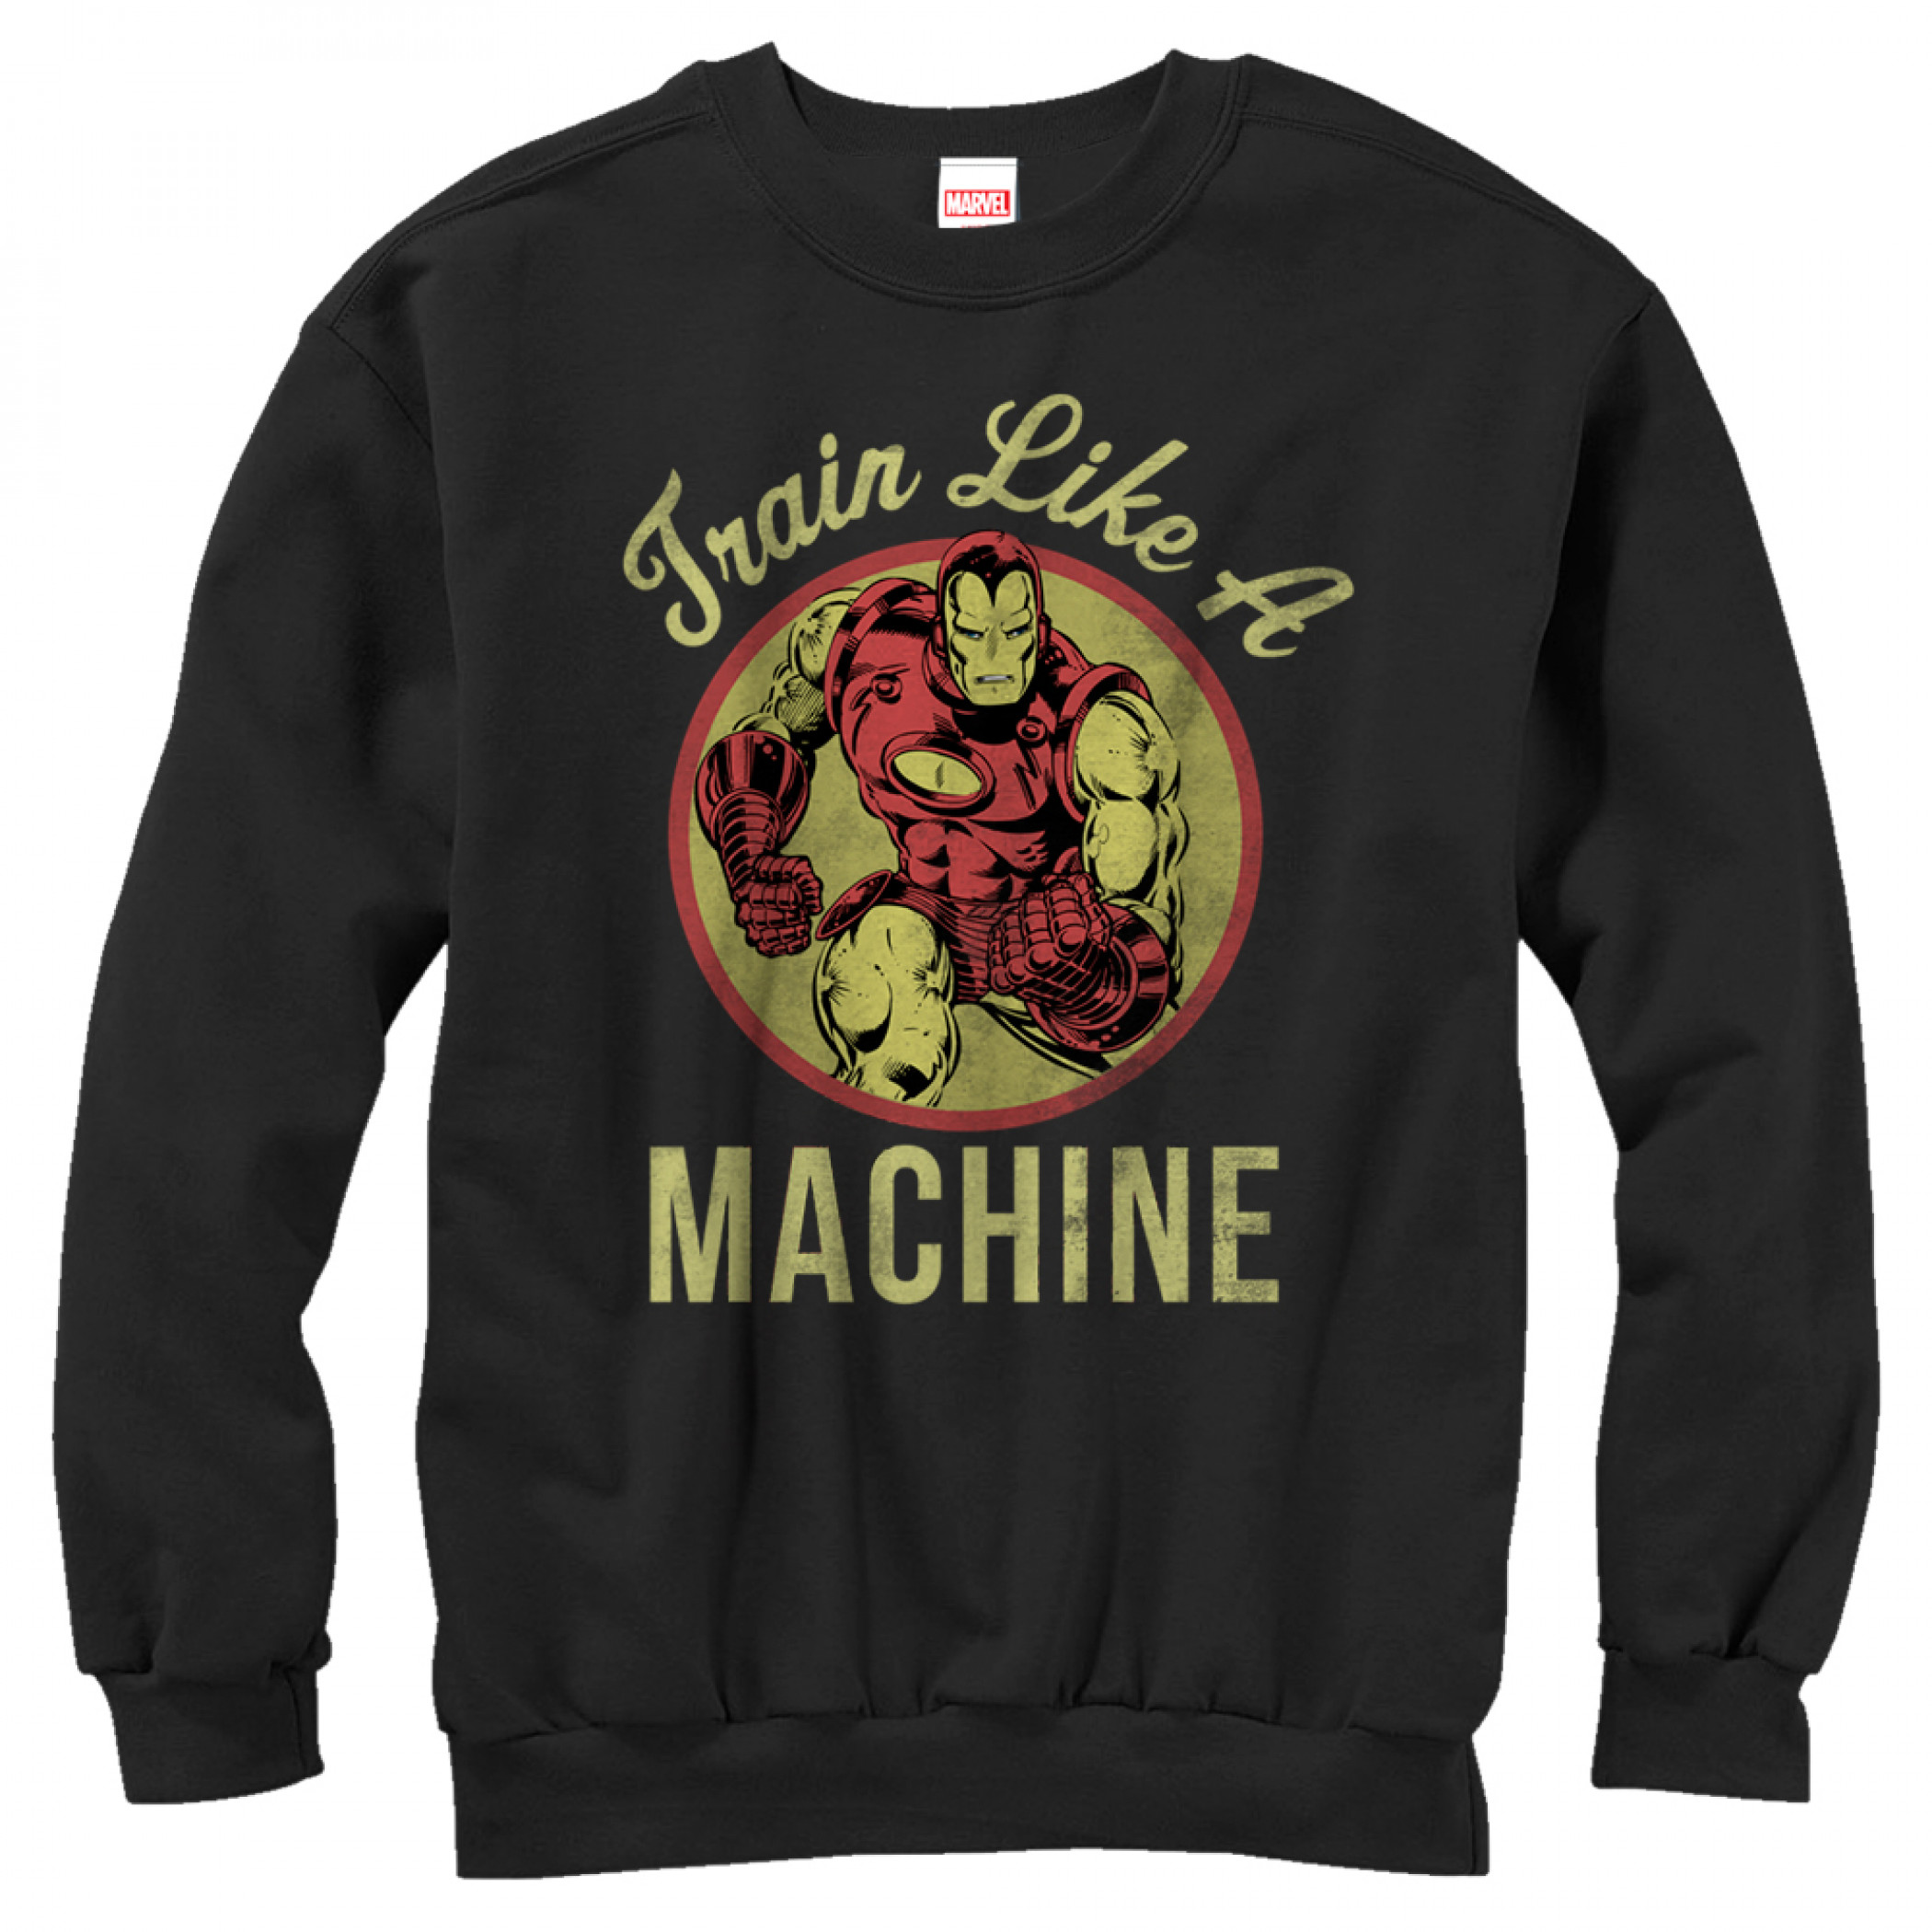 Iron Man Train Like a Machine Sweatshirt